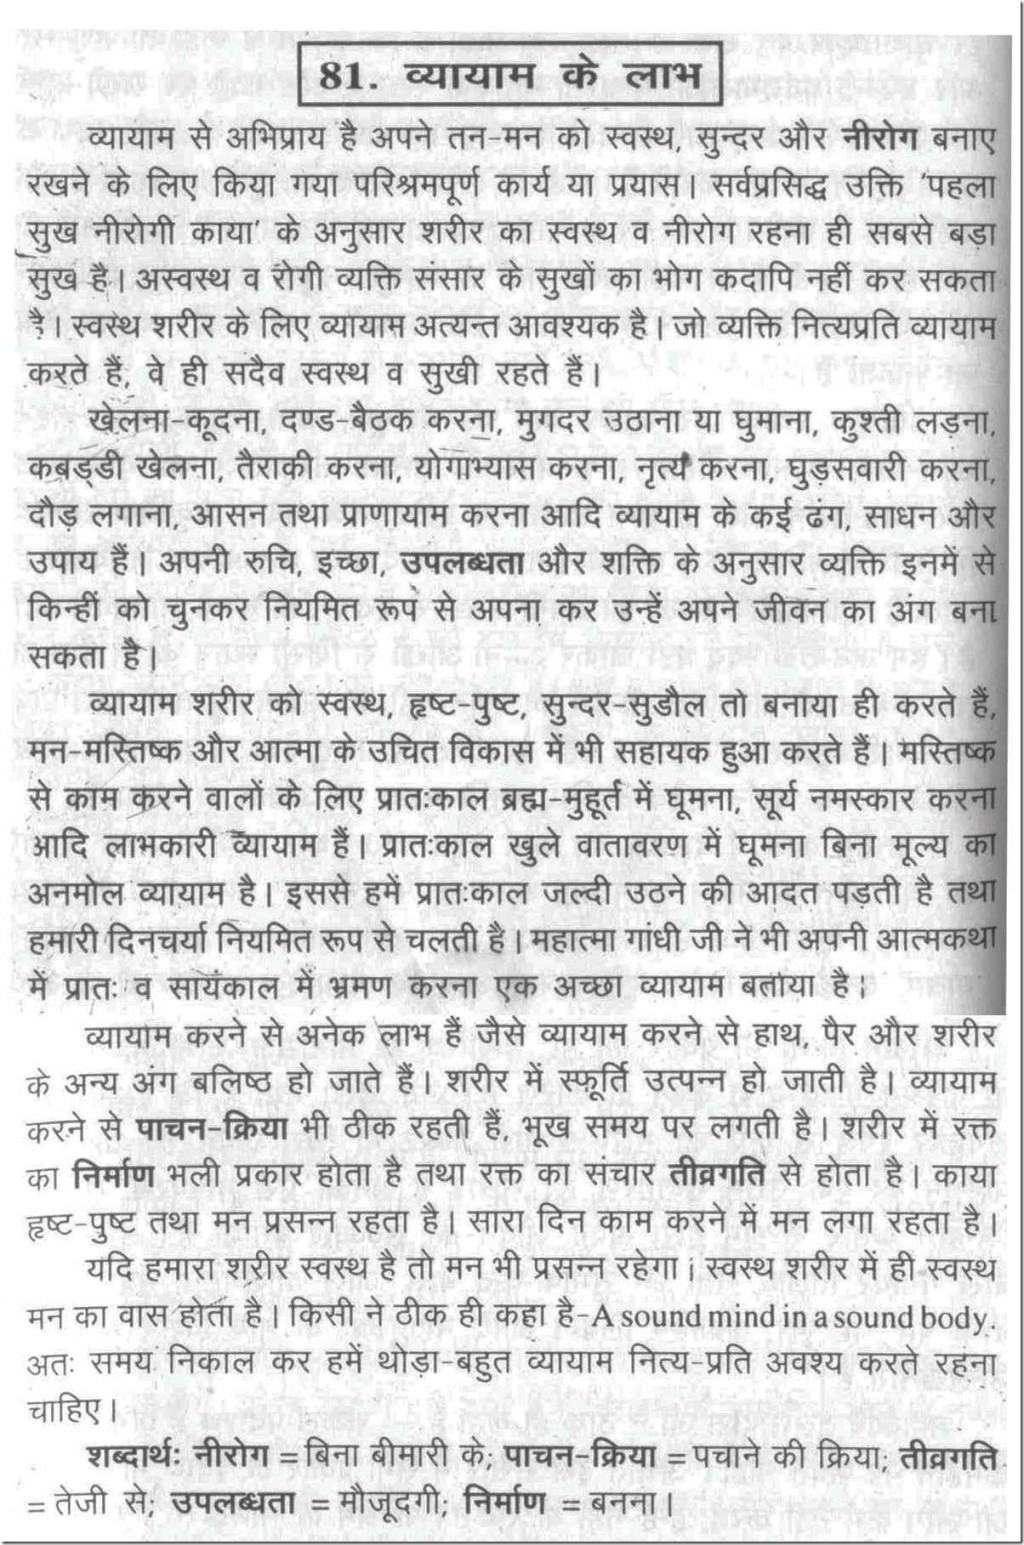 011 2563478896 Essay On Health And Fitness Through Food Good Habits In Hindi Exceptional Wikipedia Large